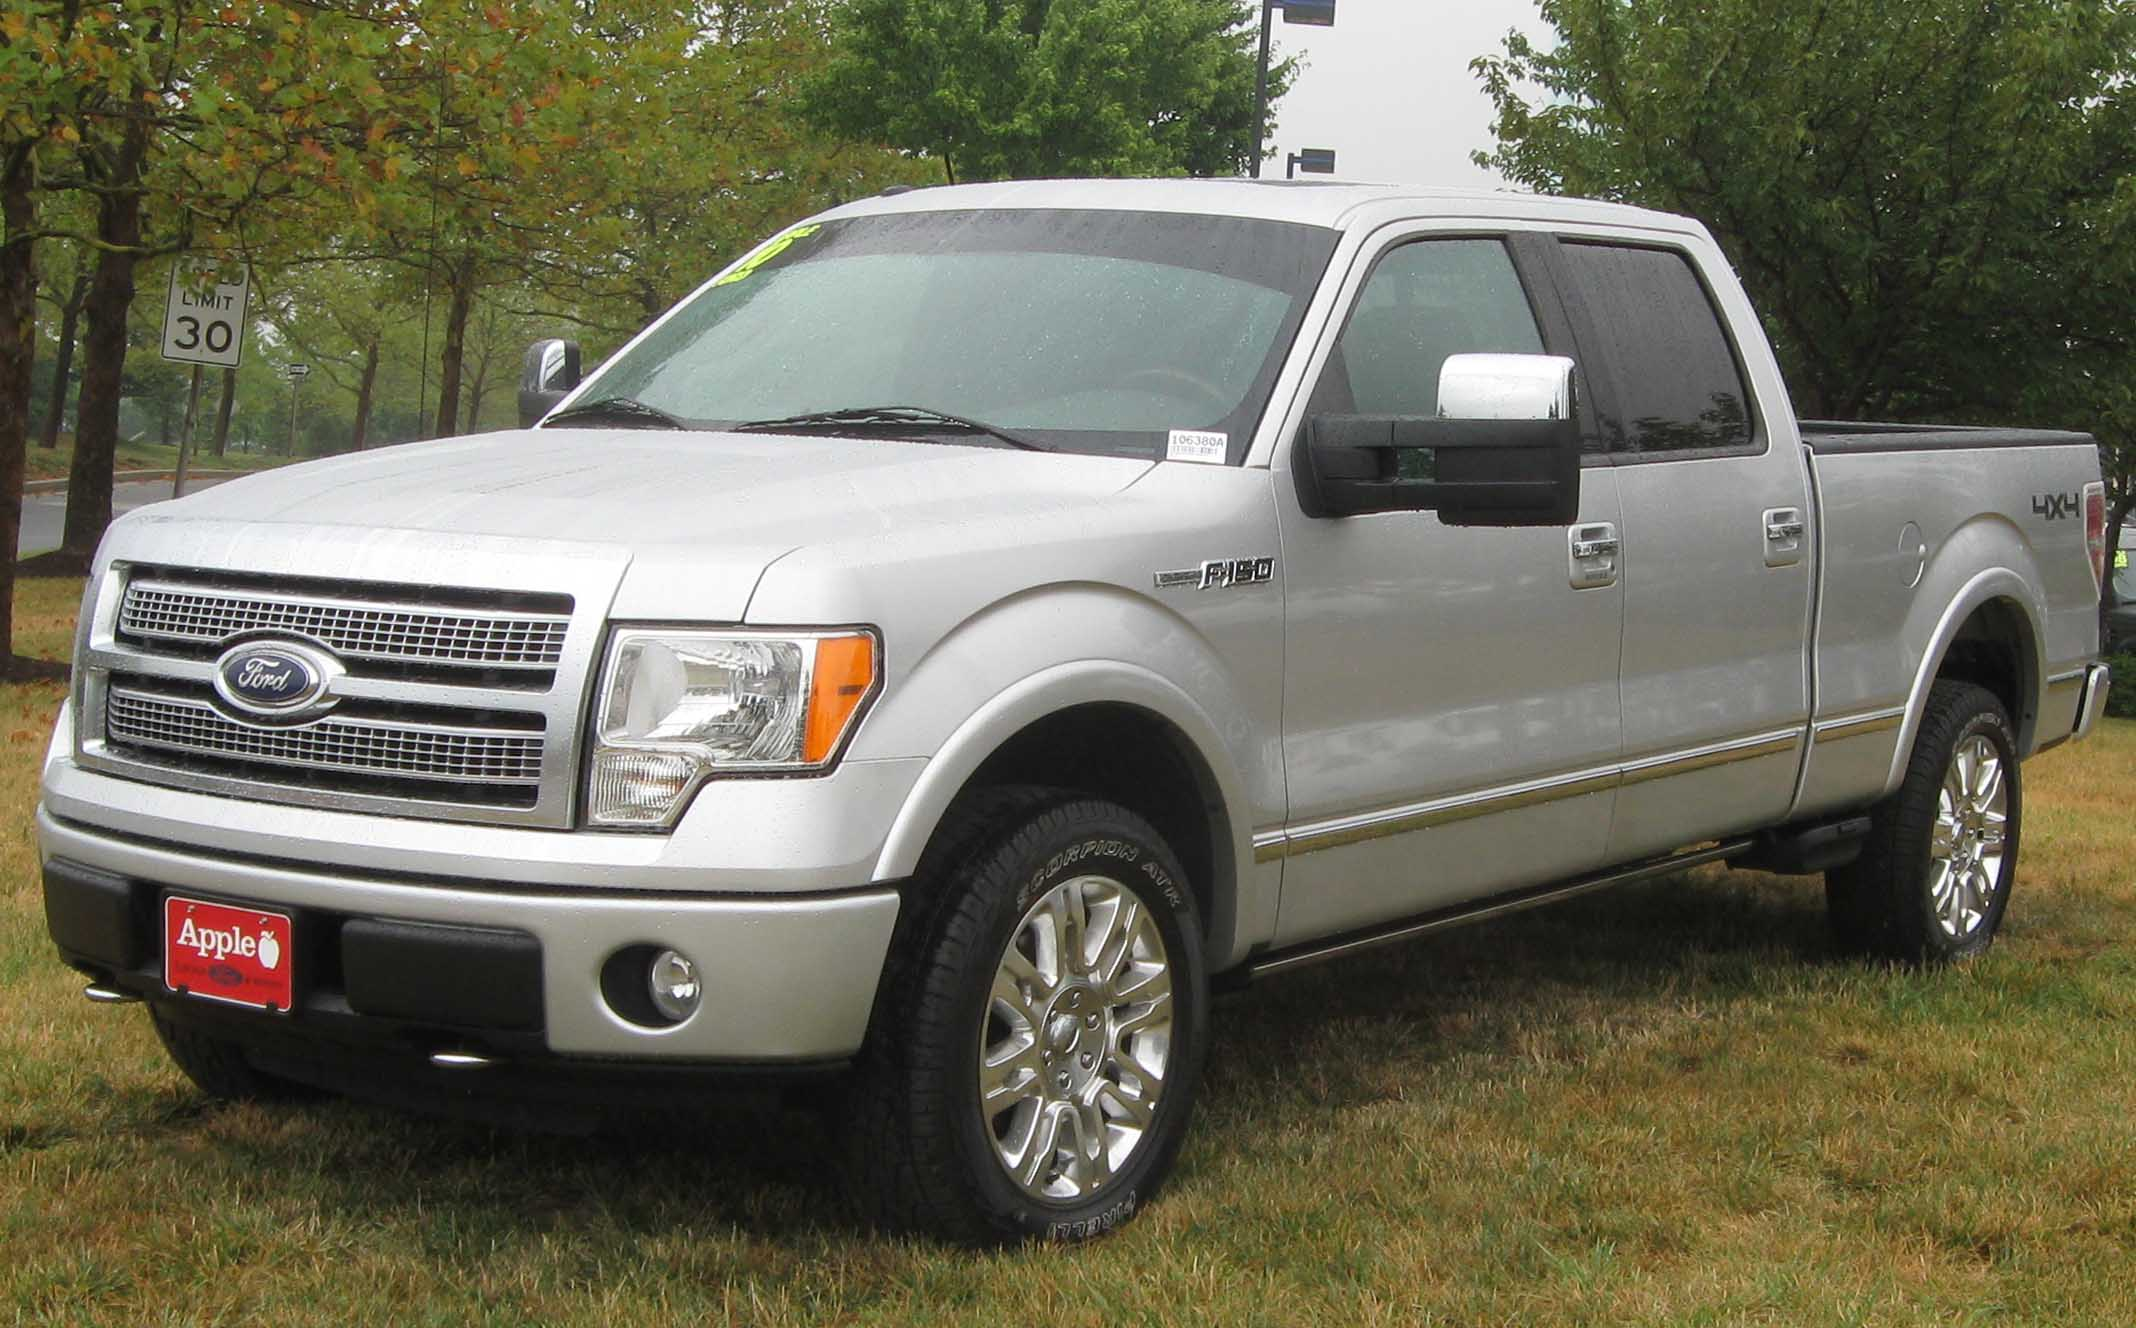 2014 ford f-150 in nj